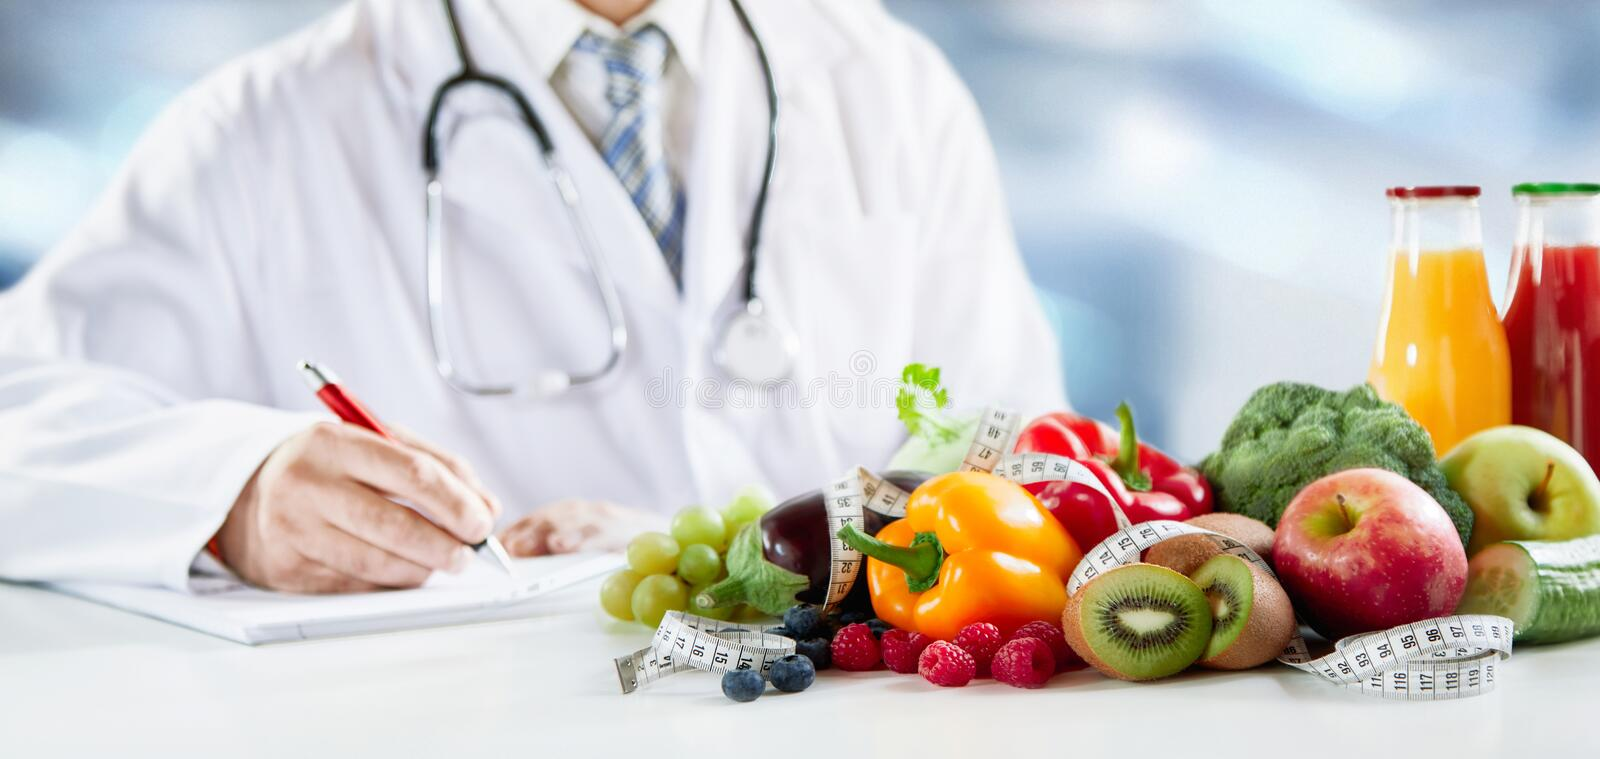 Dietitian writing a prescription for healthy diet. Dietitian writing a prescription for a healthy diet with assorted fresh fruit and vegetables in the foreground stock image